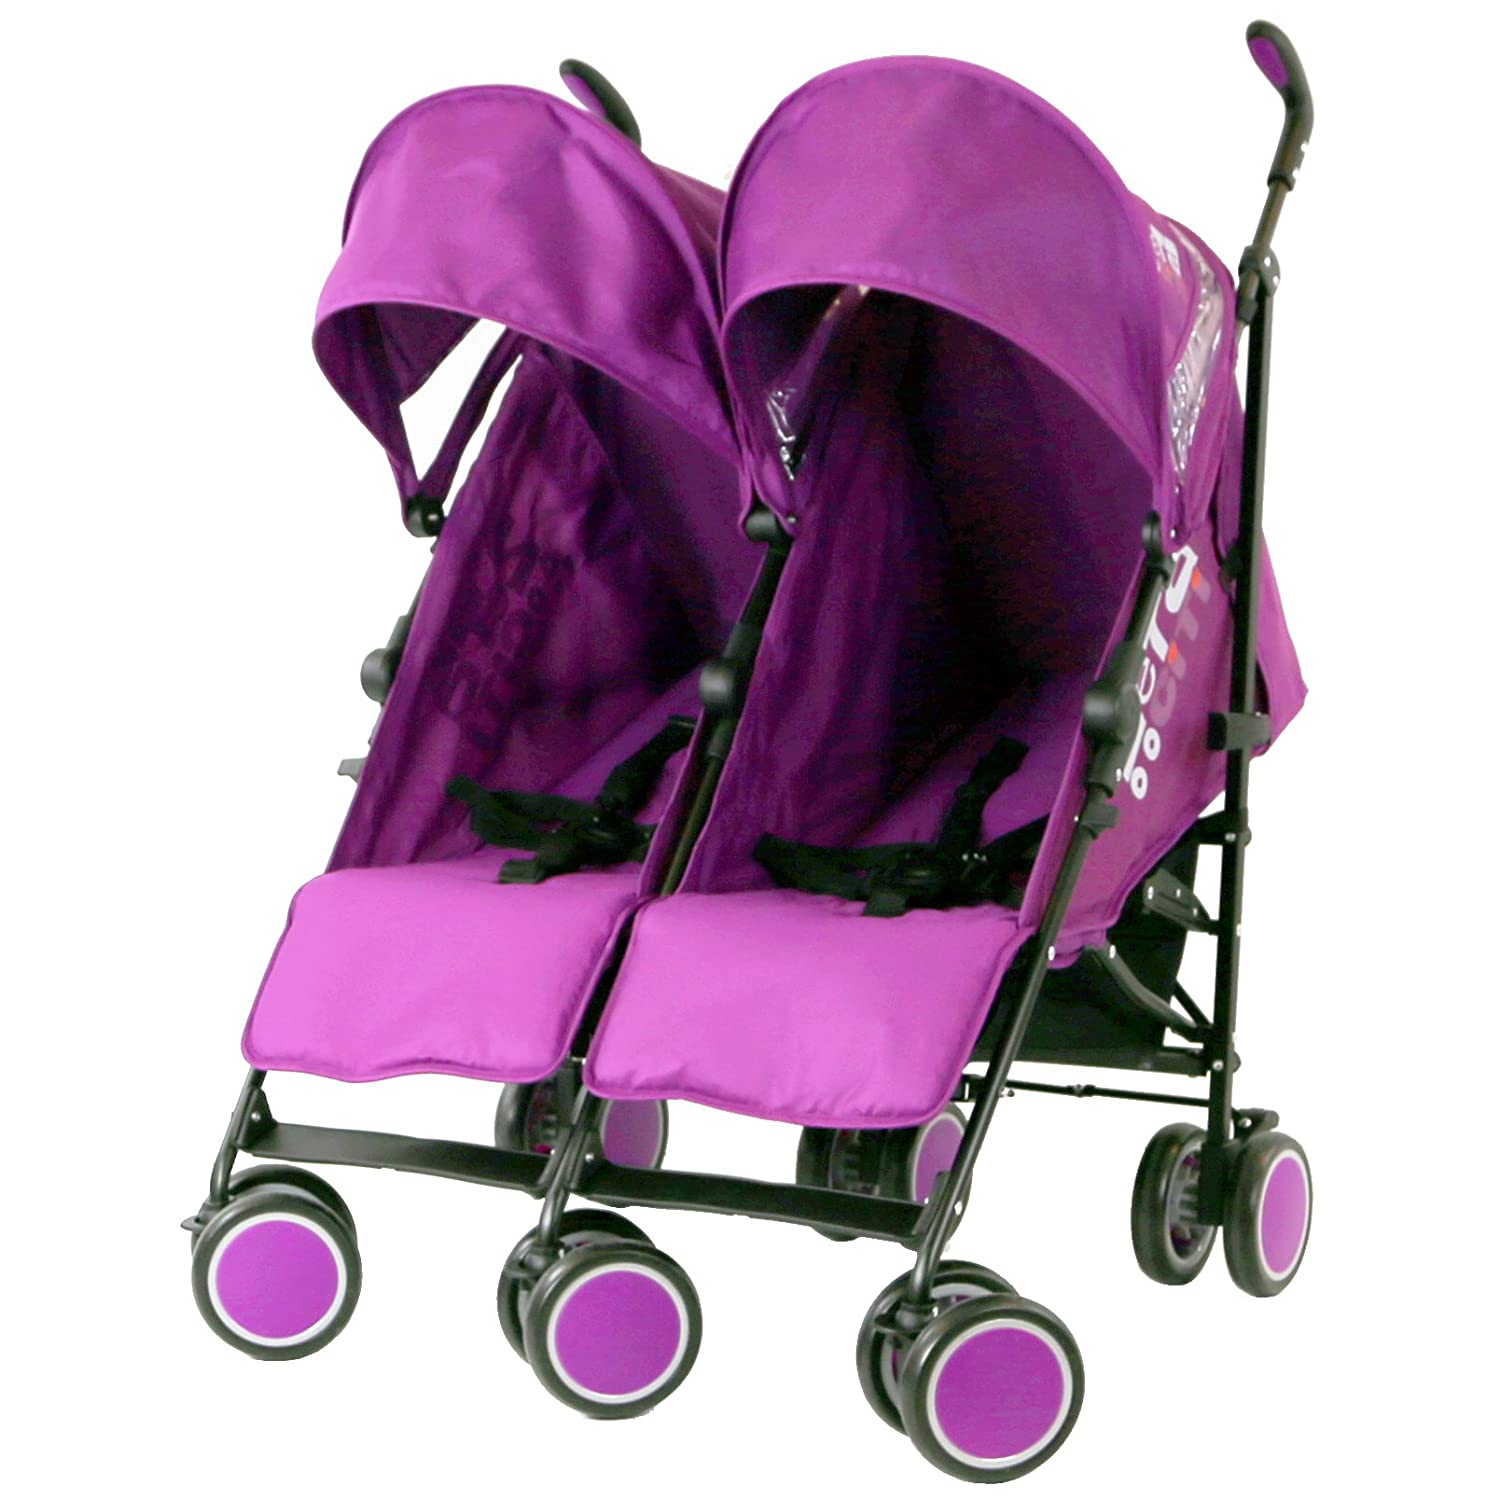 QT Babies Push Chair - QT-HBS729 Baby TravelTM